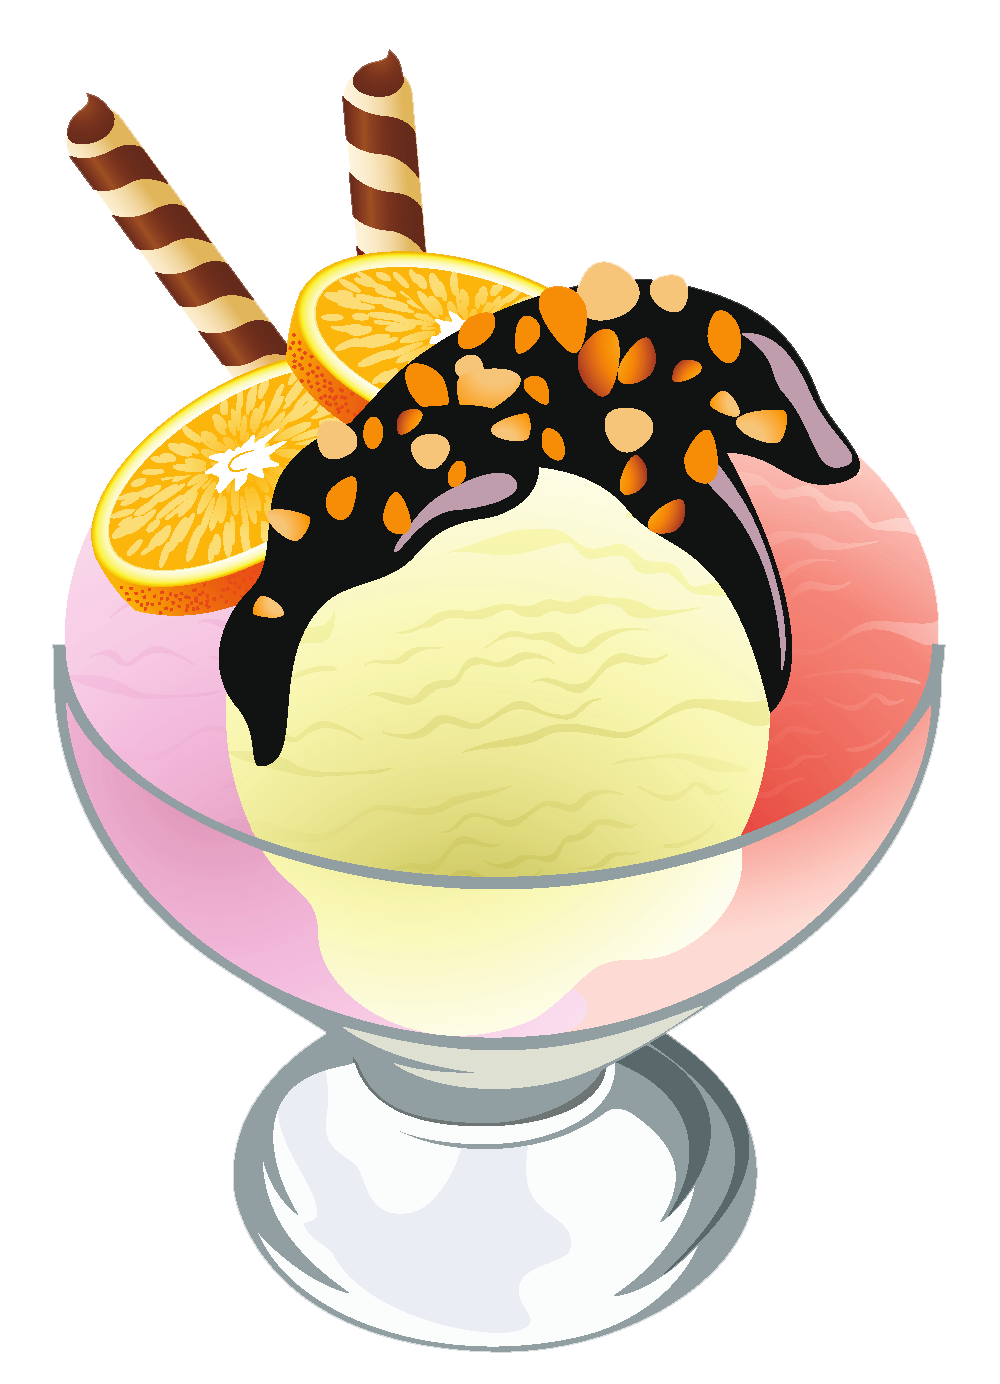 Sundae transparent picture cliparts. Glasses clipart ice cream